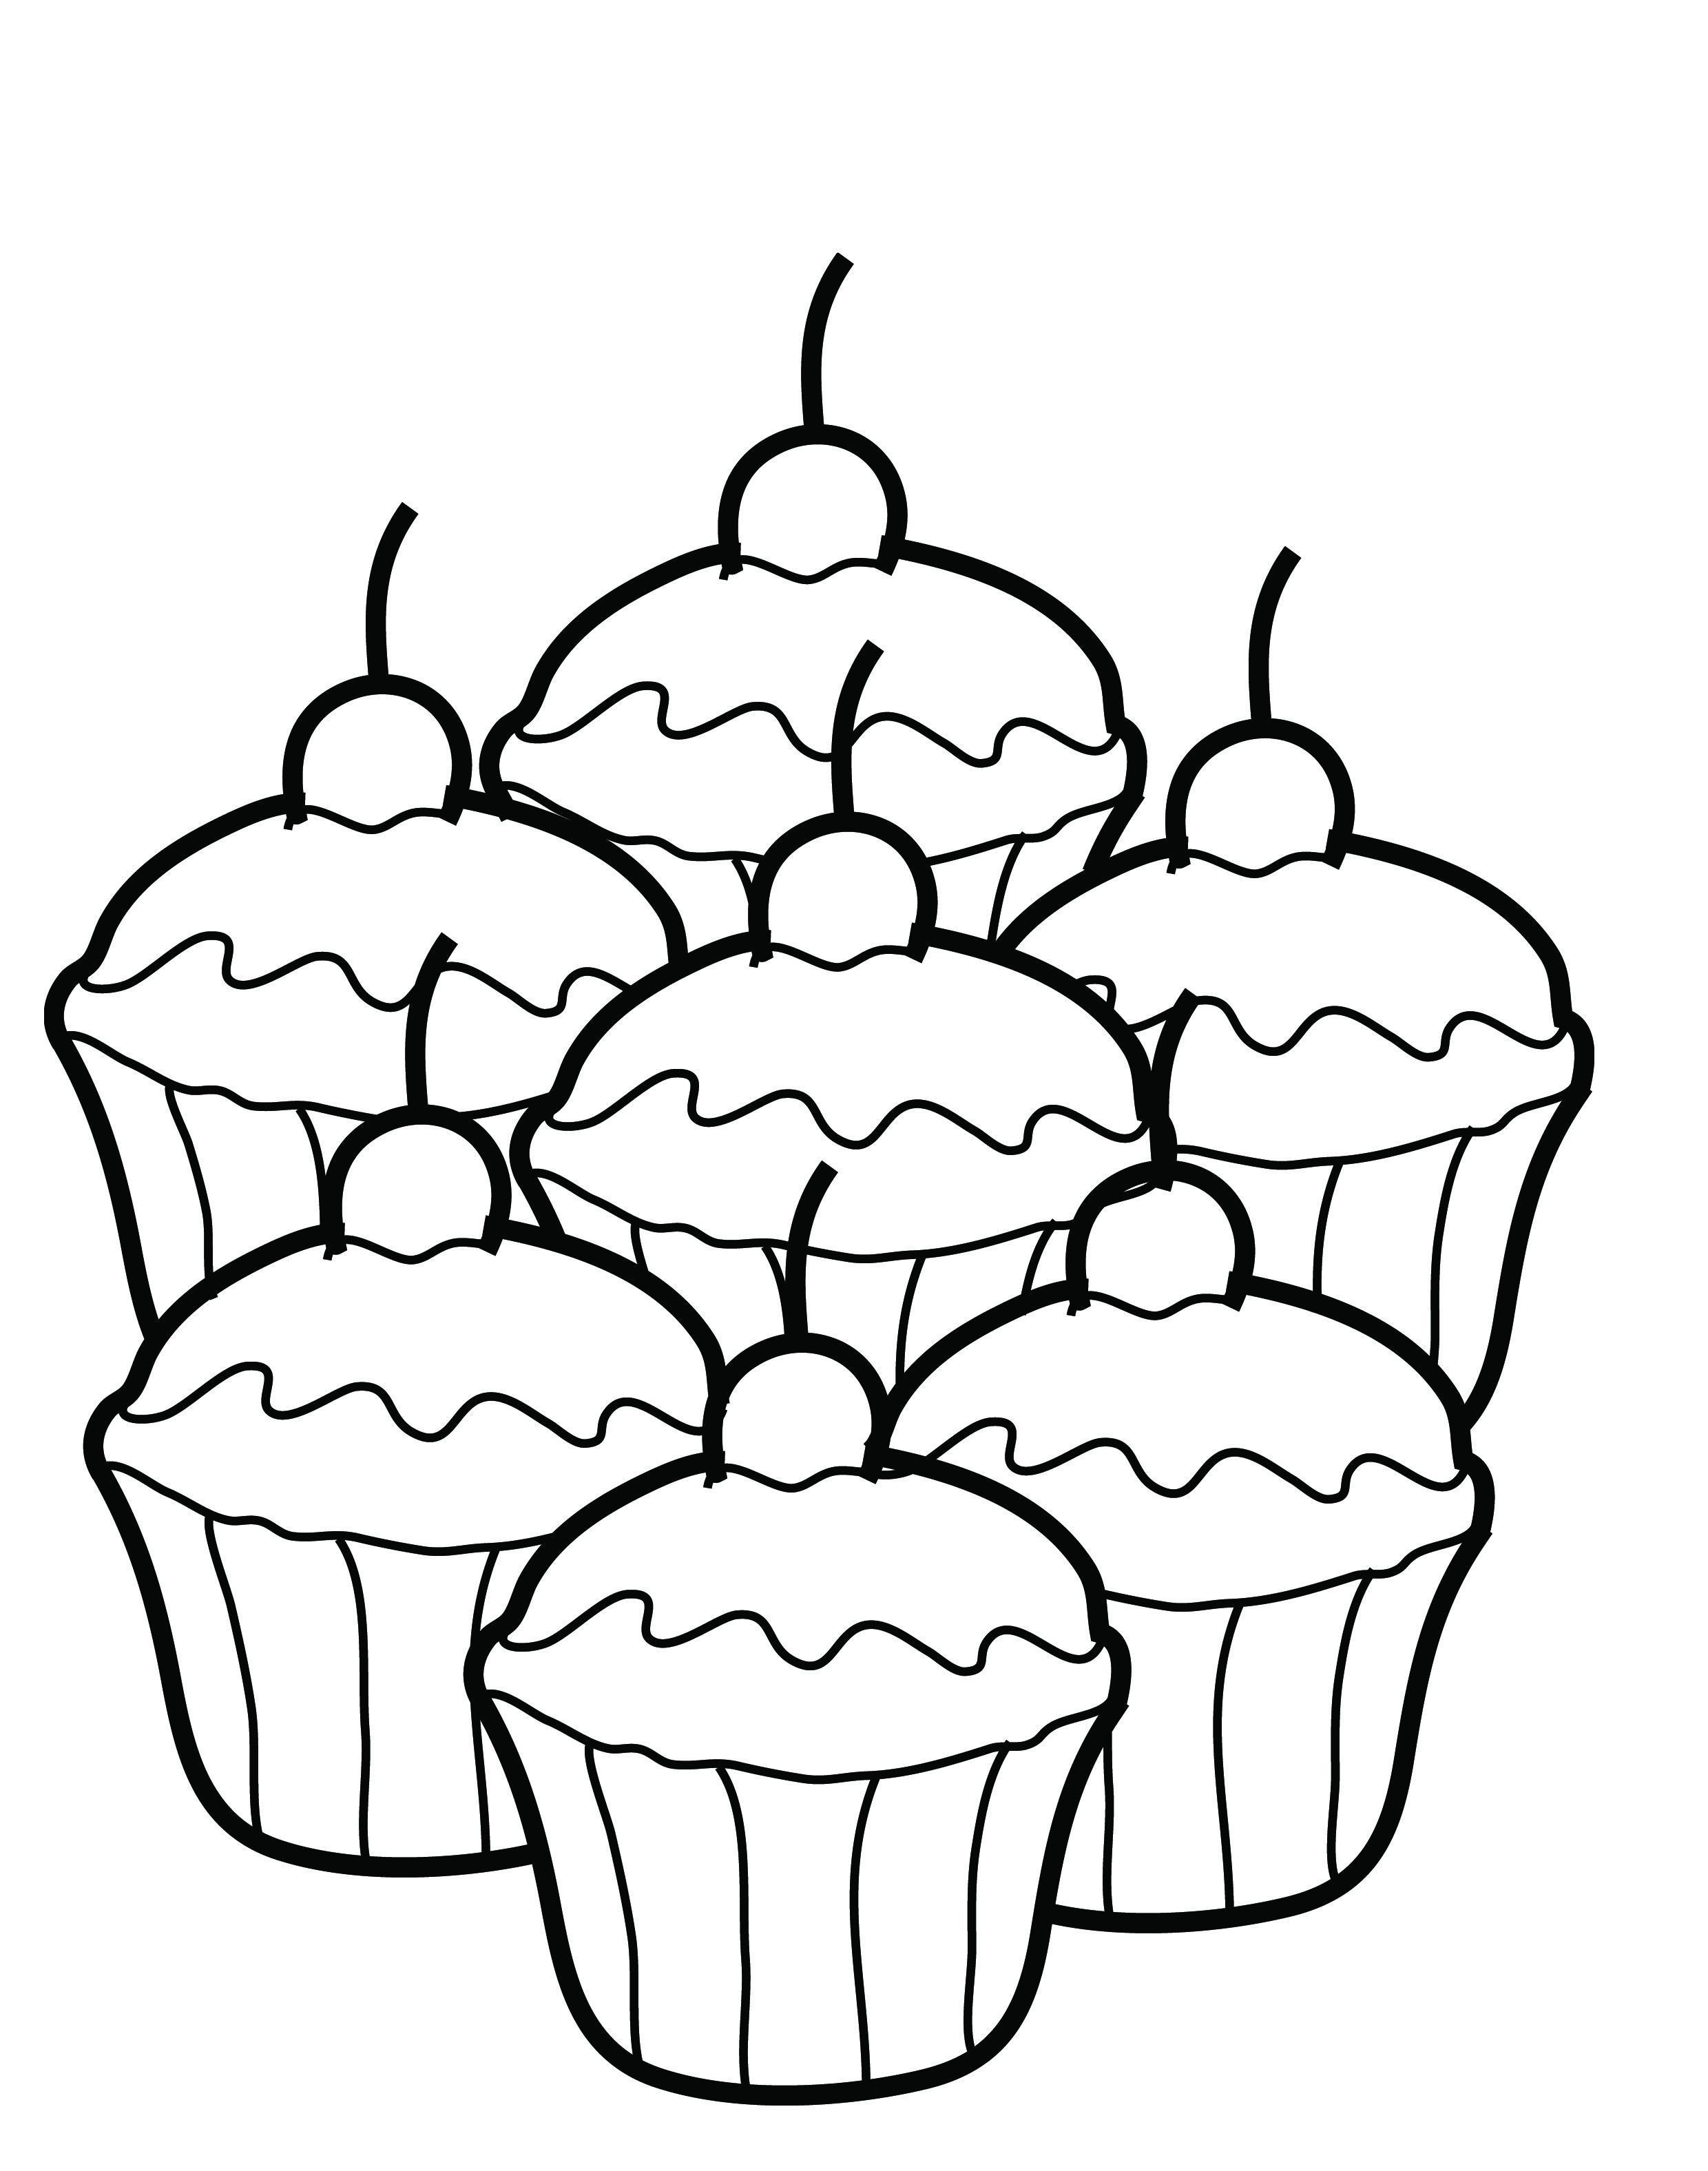 cupcake coloring pages for kids - Coloring Pictures For Kids